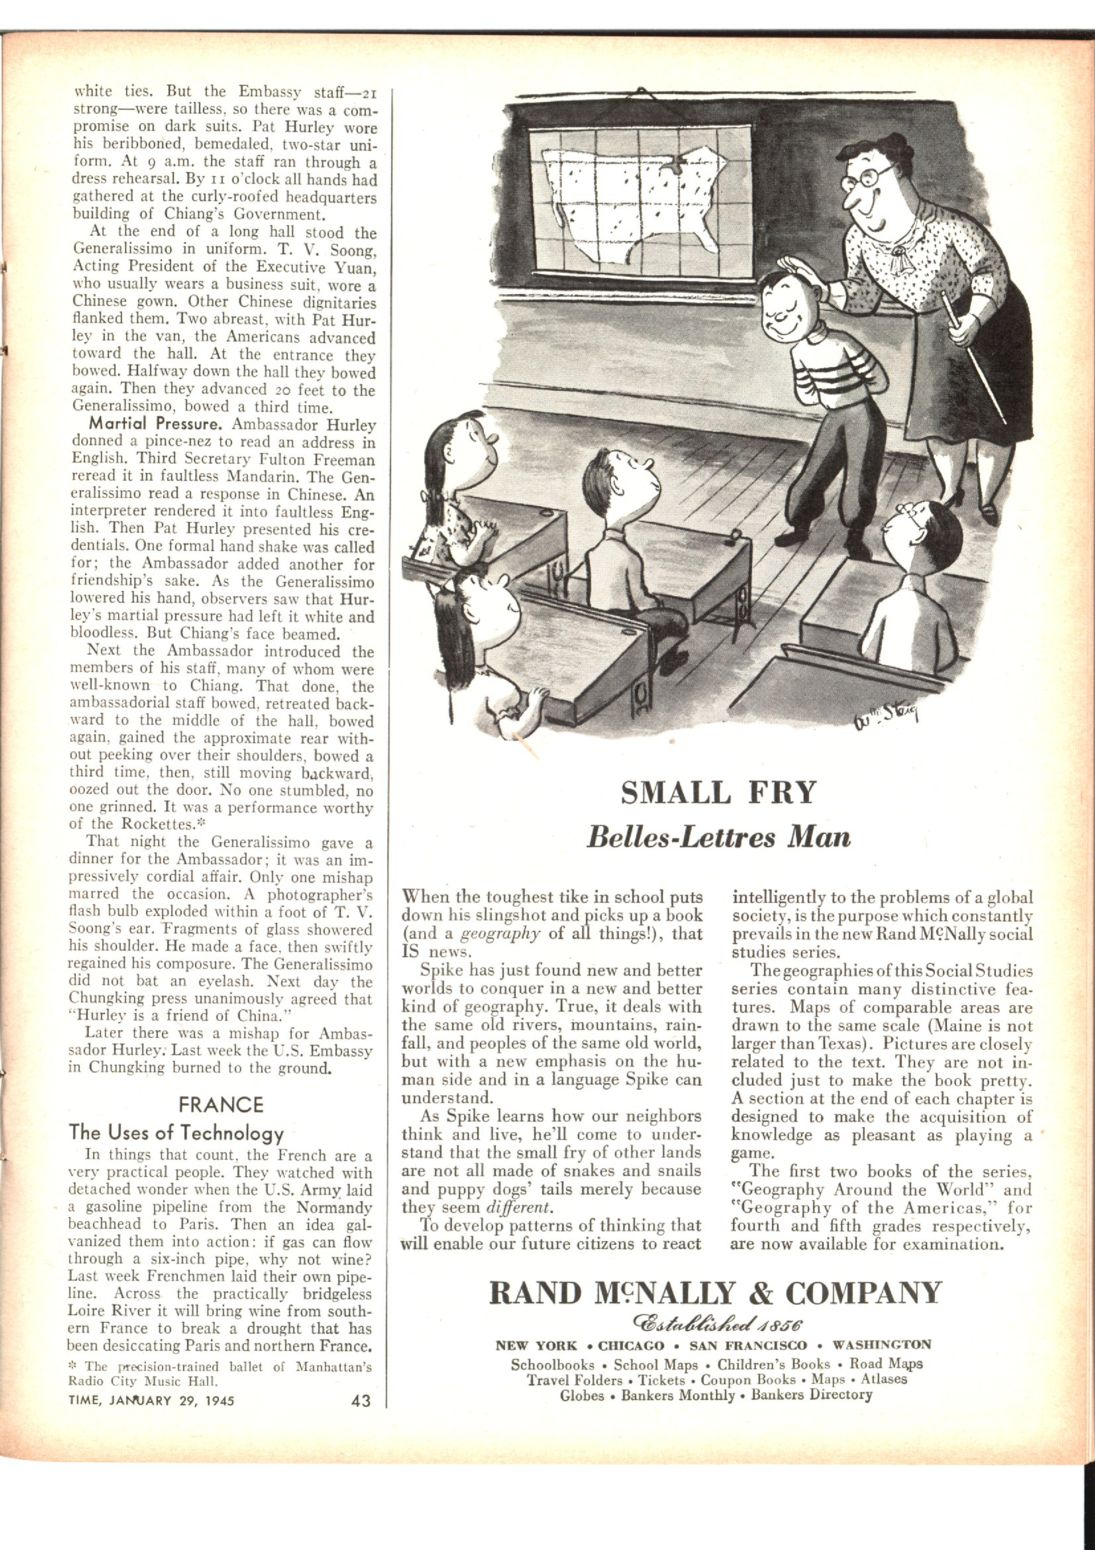 Index of /TIMEvault/1945/1945-01-29